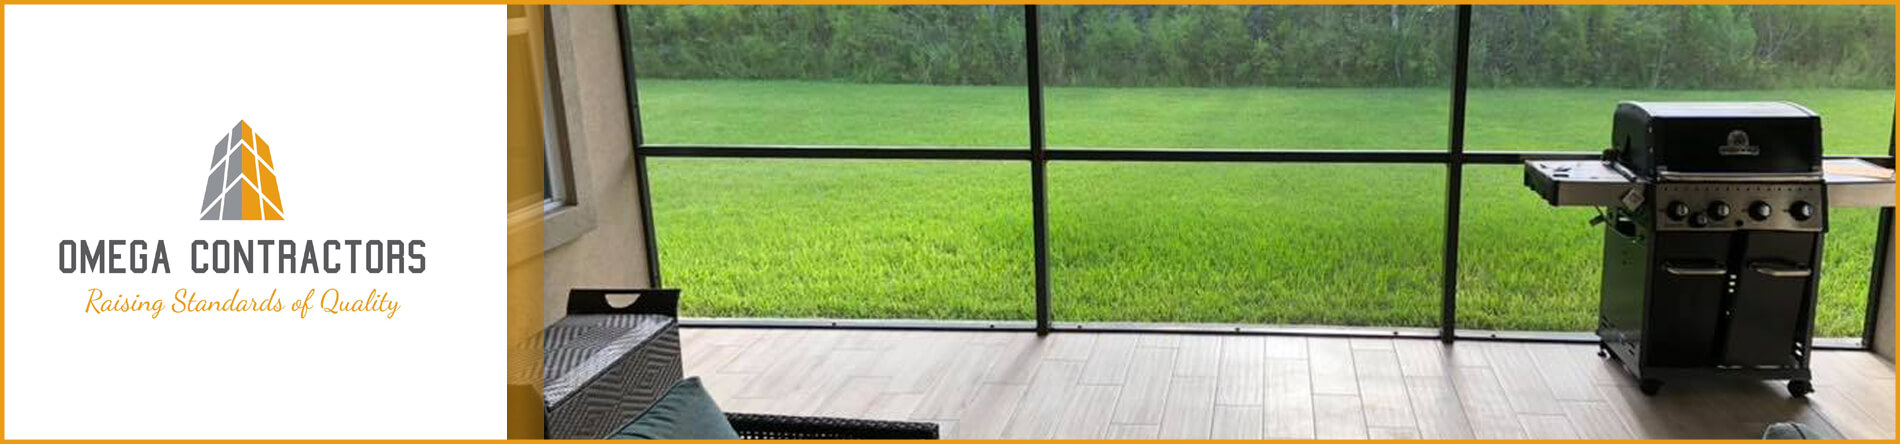 Omega Contractors is a General Contractor in Jacksonville, FL